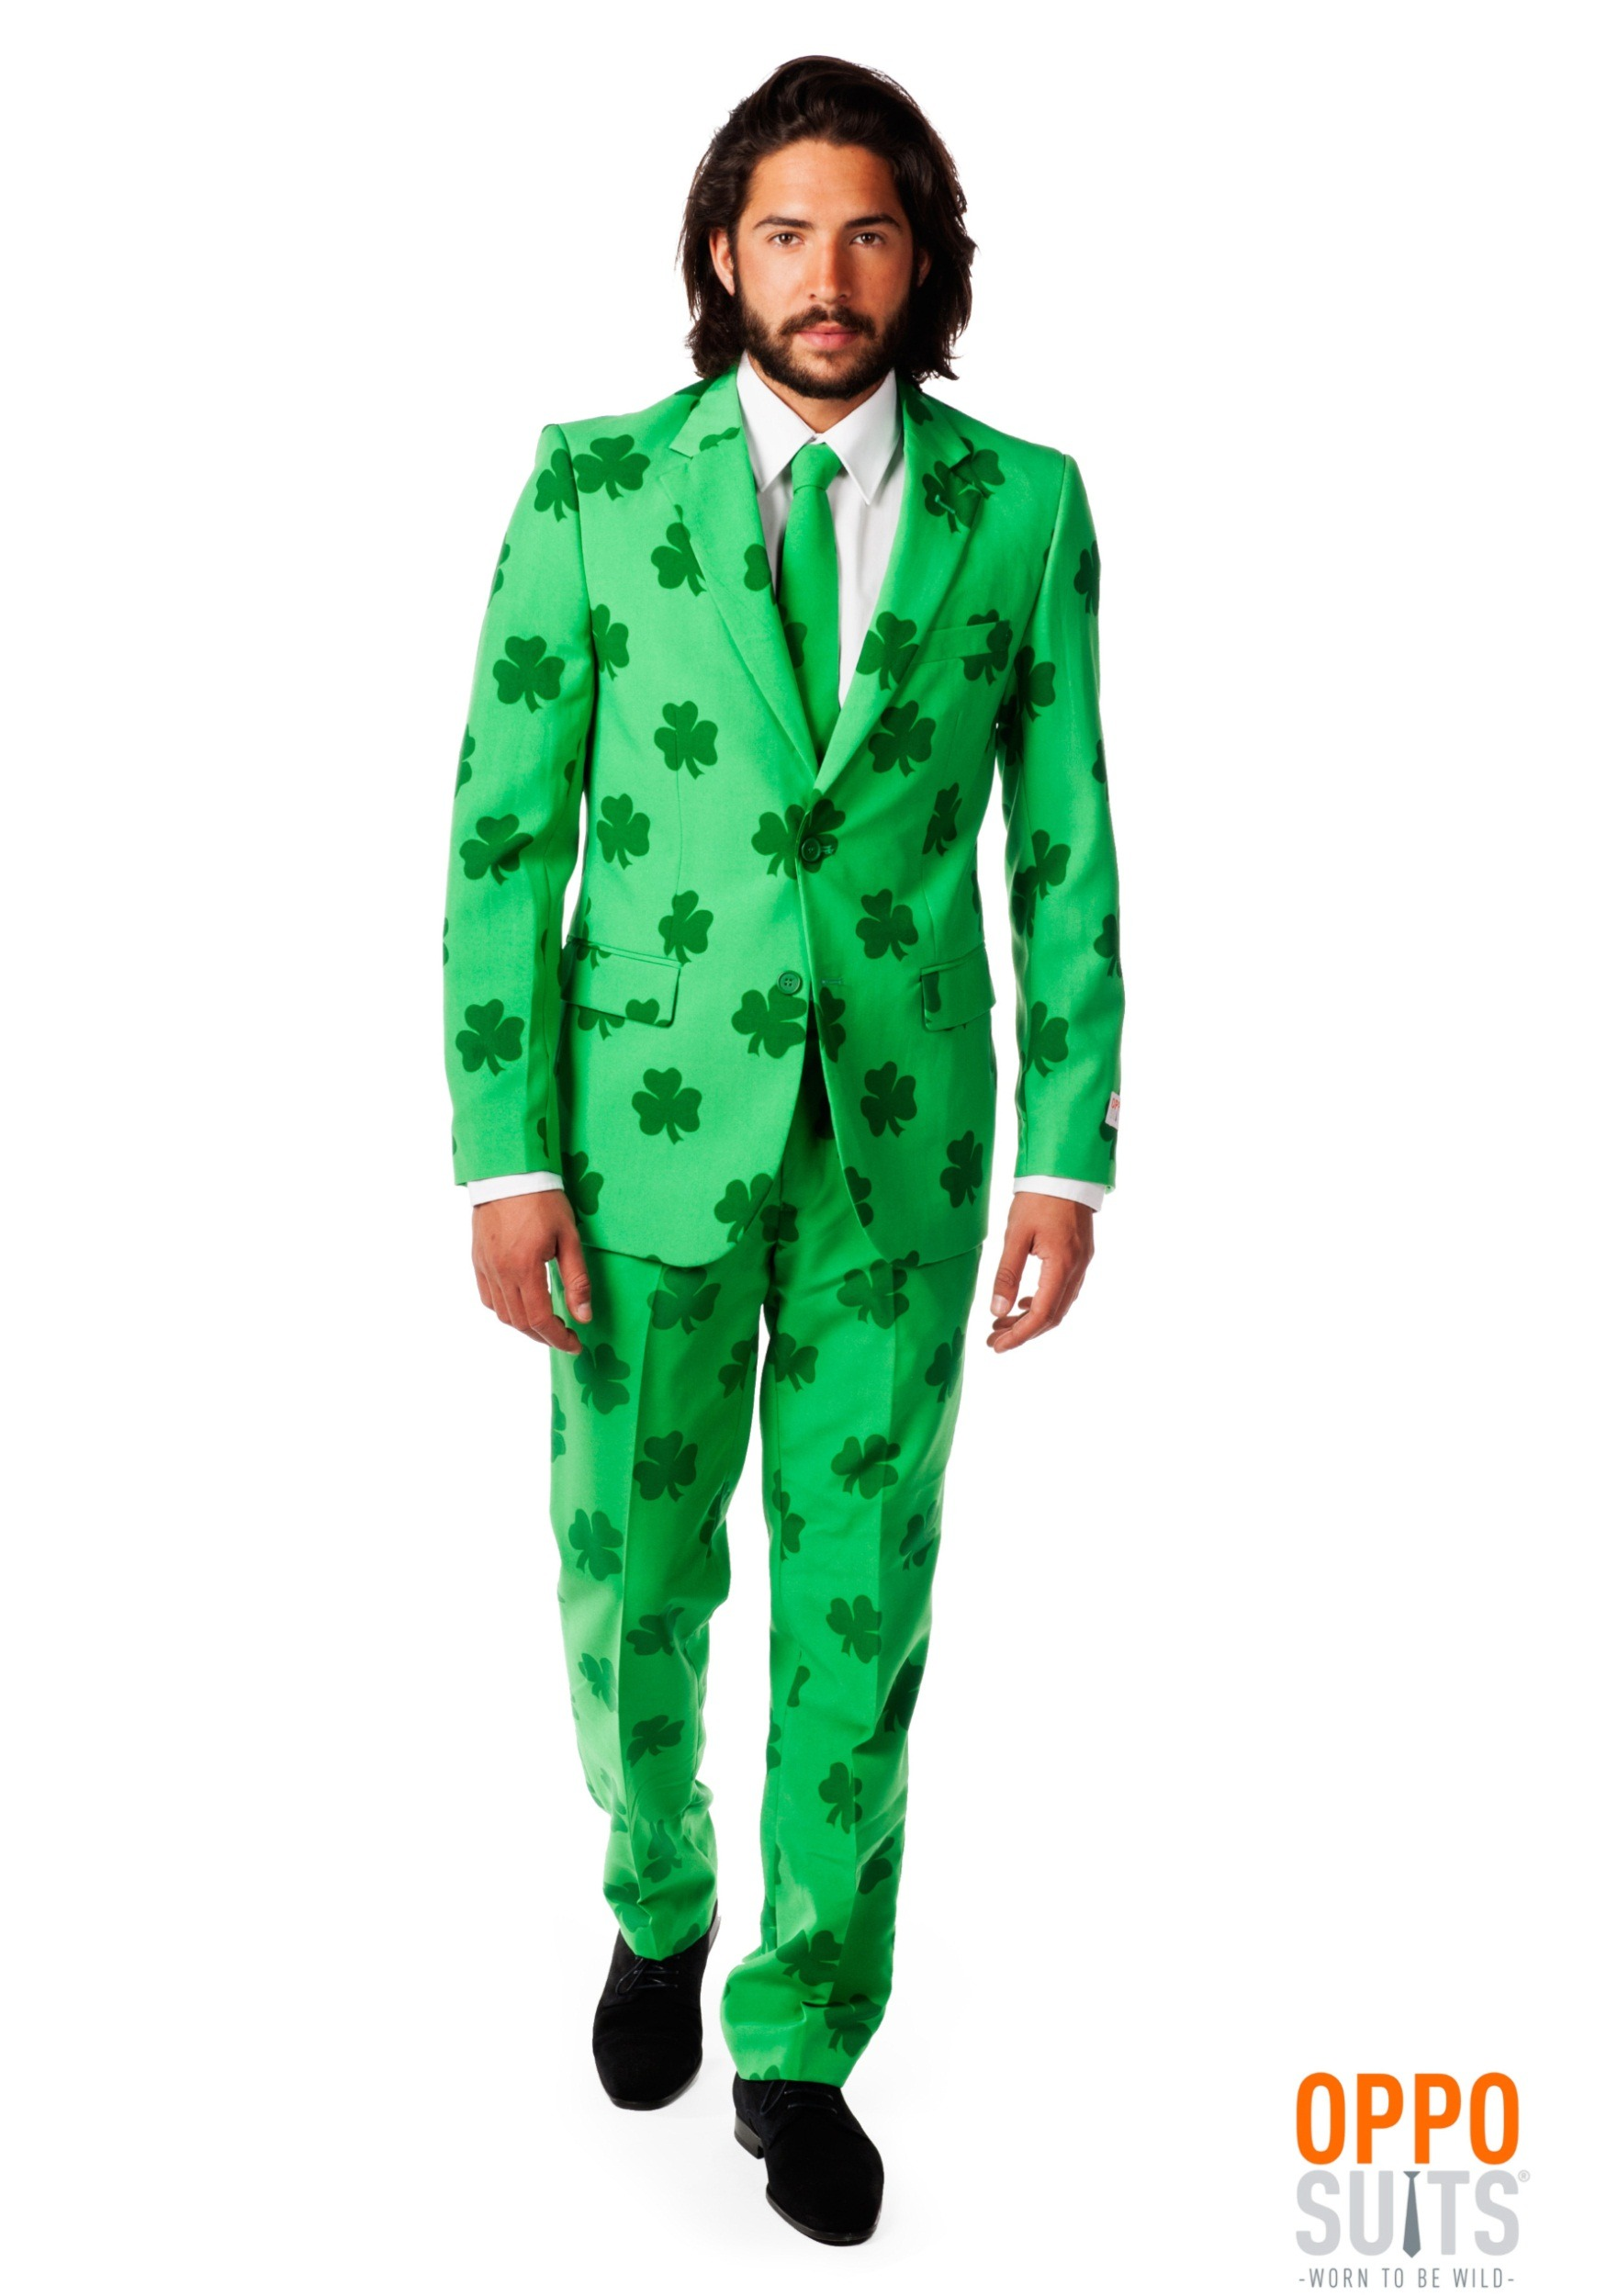 Men's OppoSuits Green St. Patrick's Day Suit